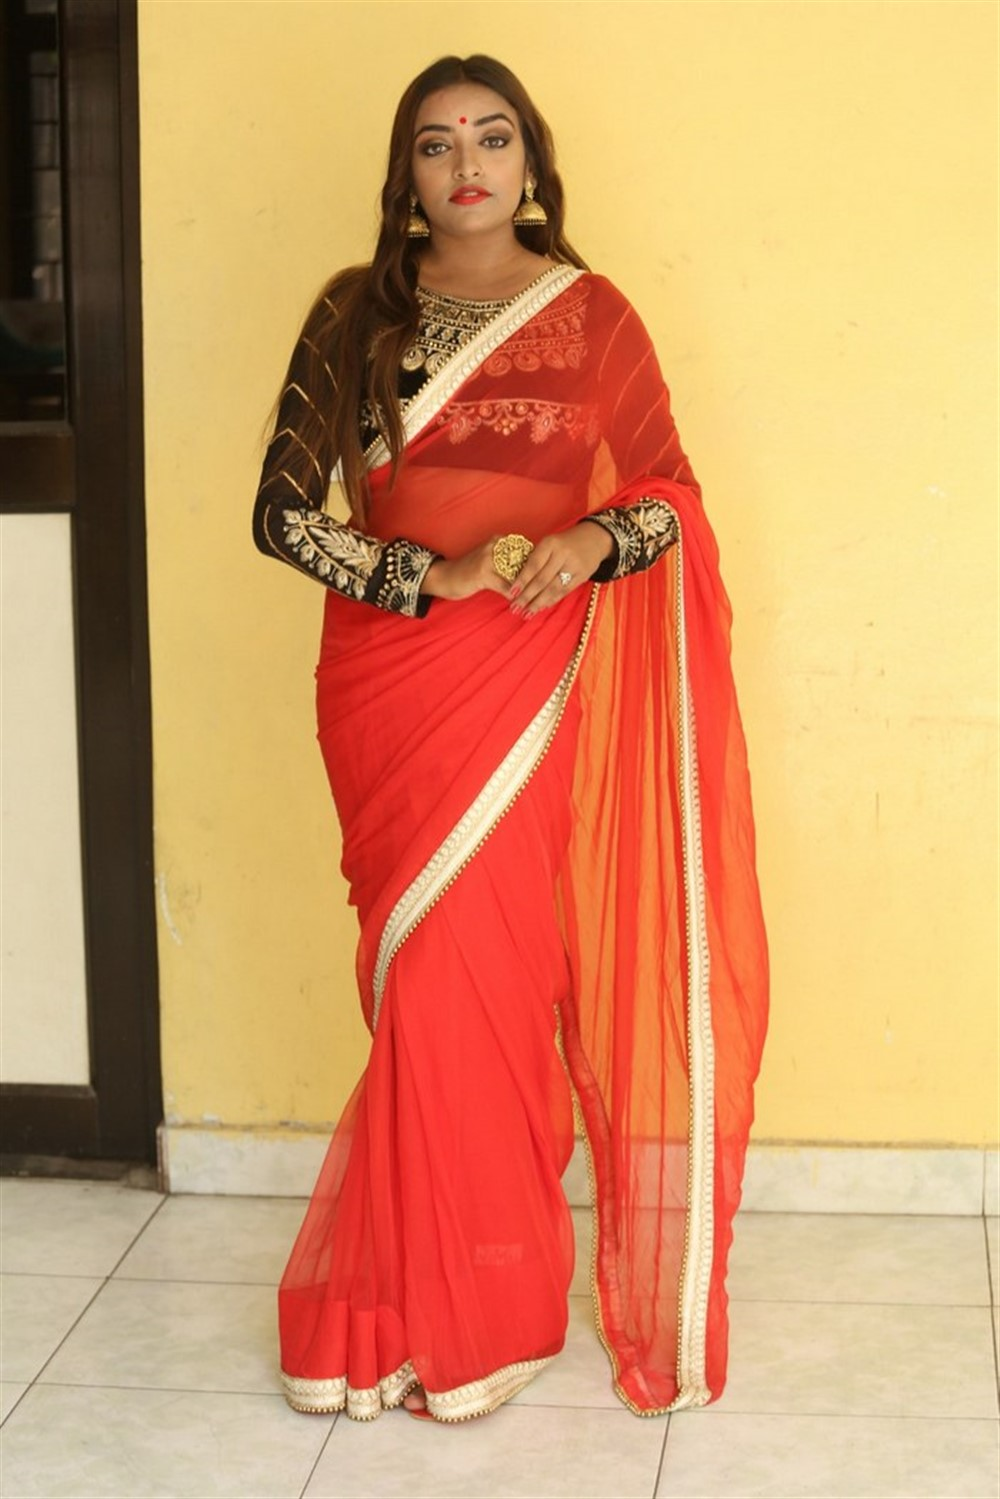 Actress Ashi Roy Pics @ KS 100 Movie Audio Release